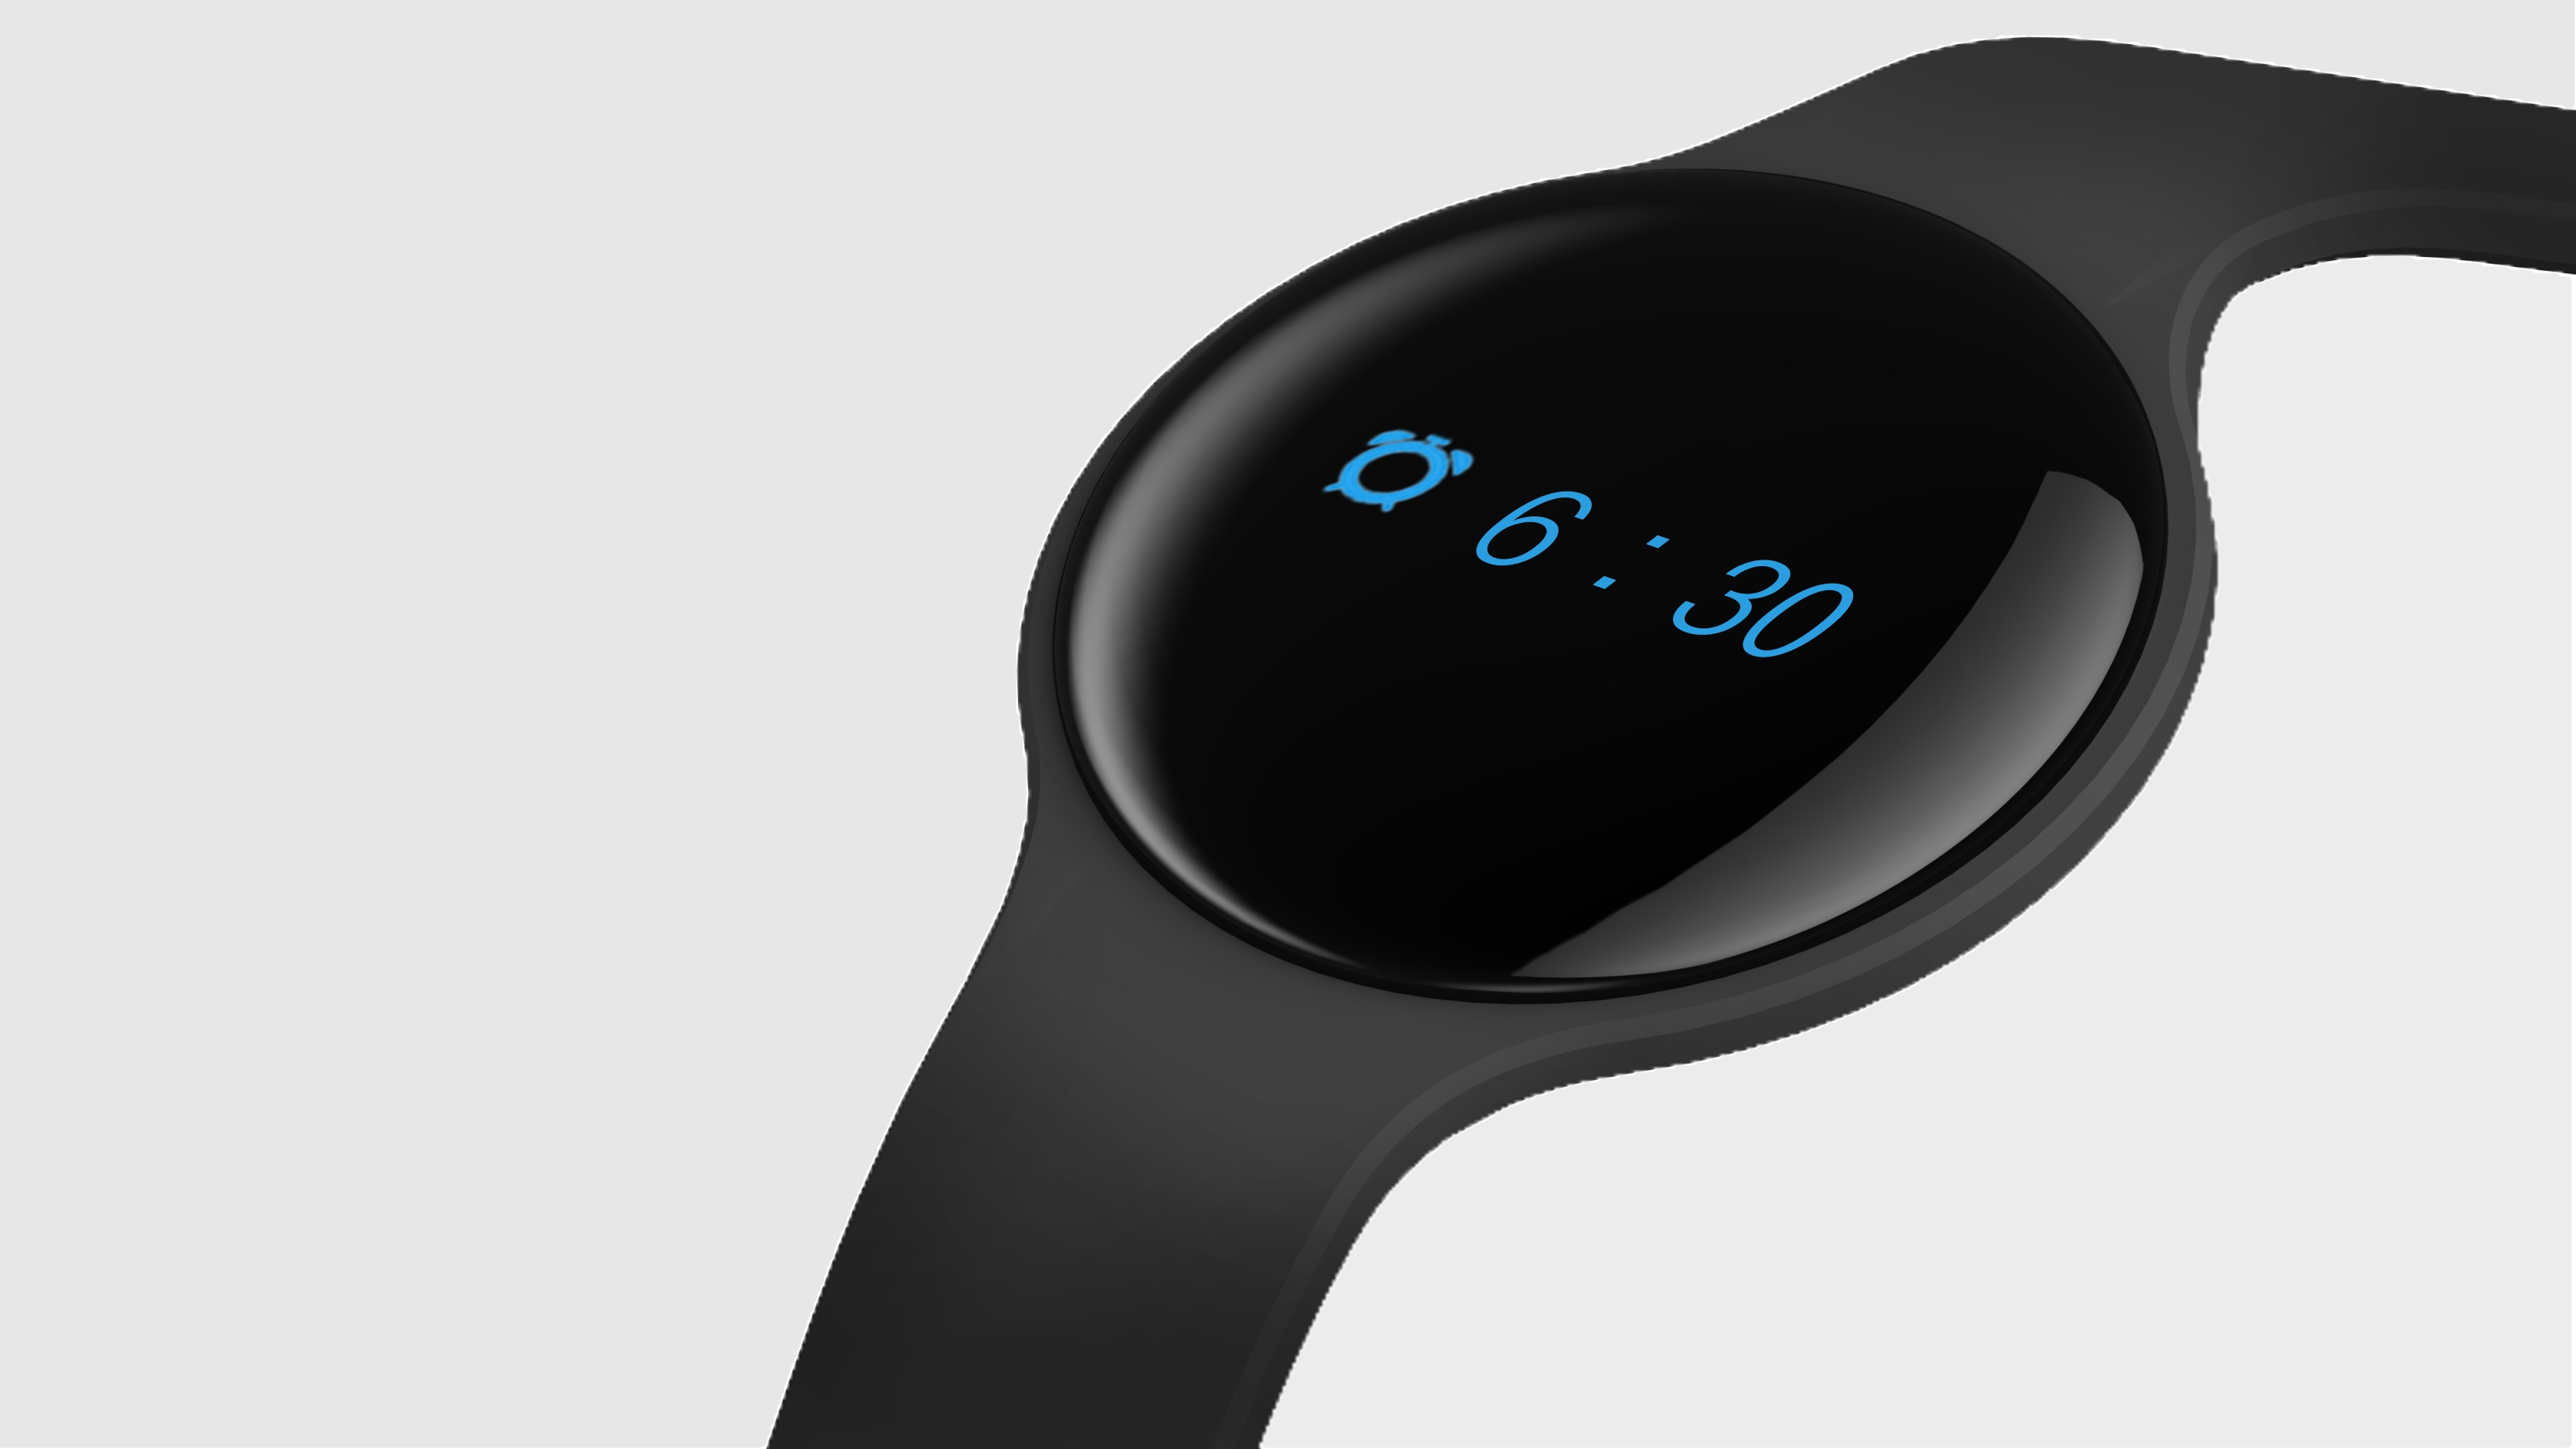 The £30 smartwatch is here